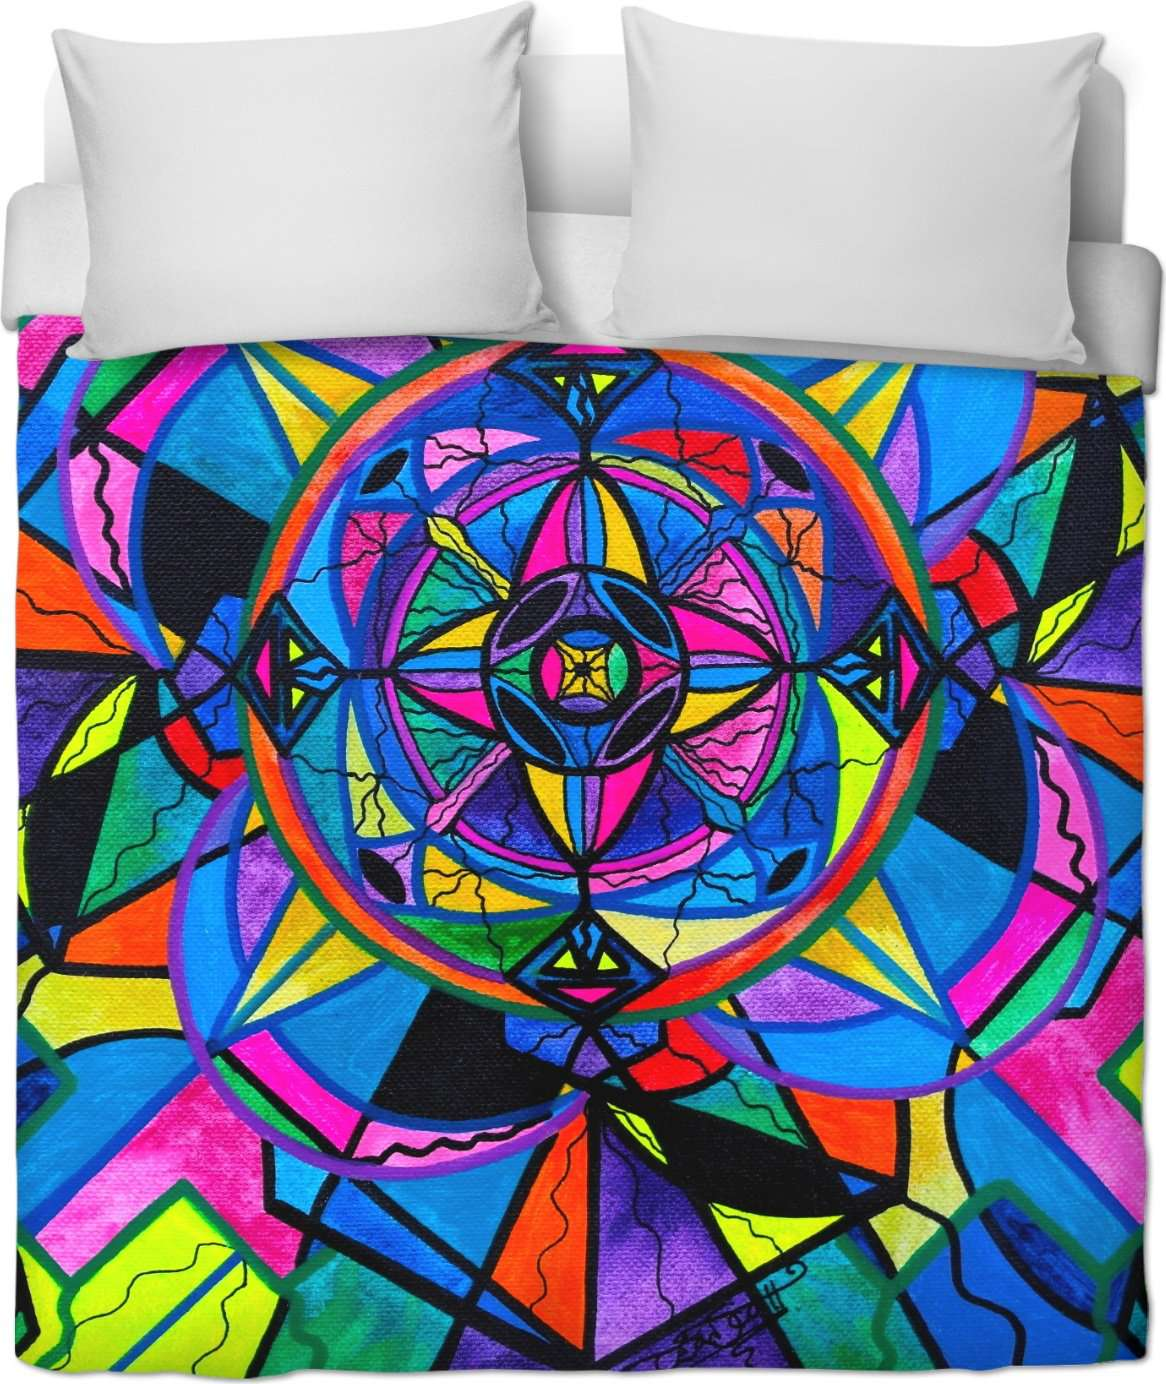 Activating Potential - Duvet Cover